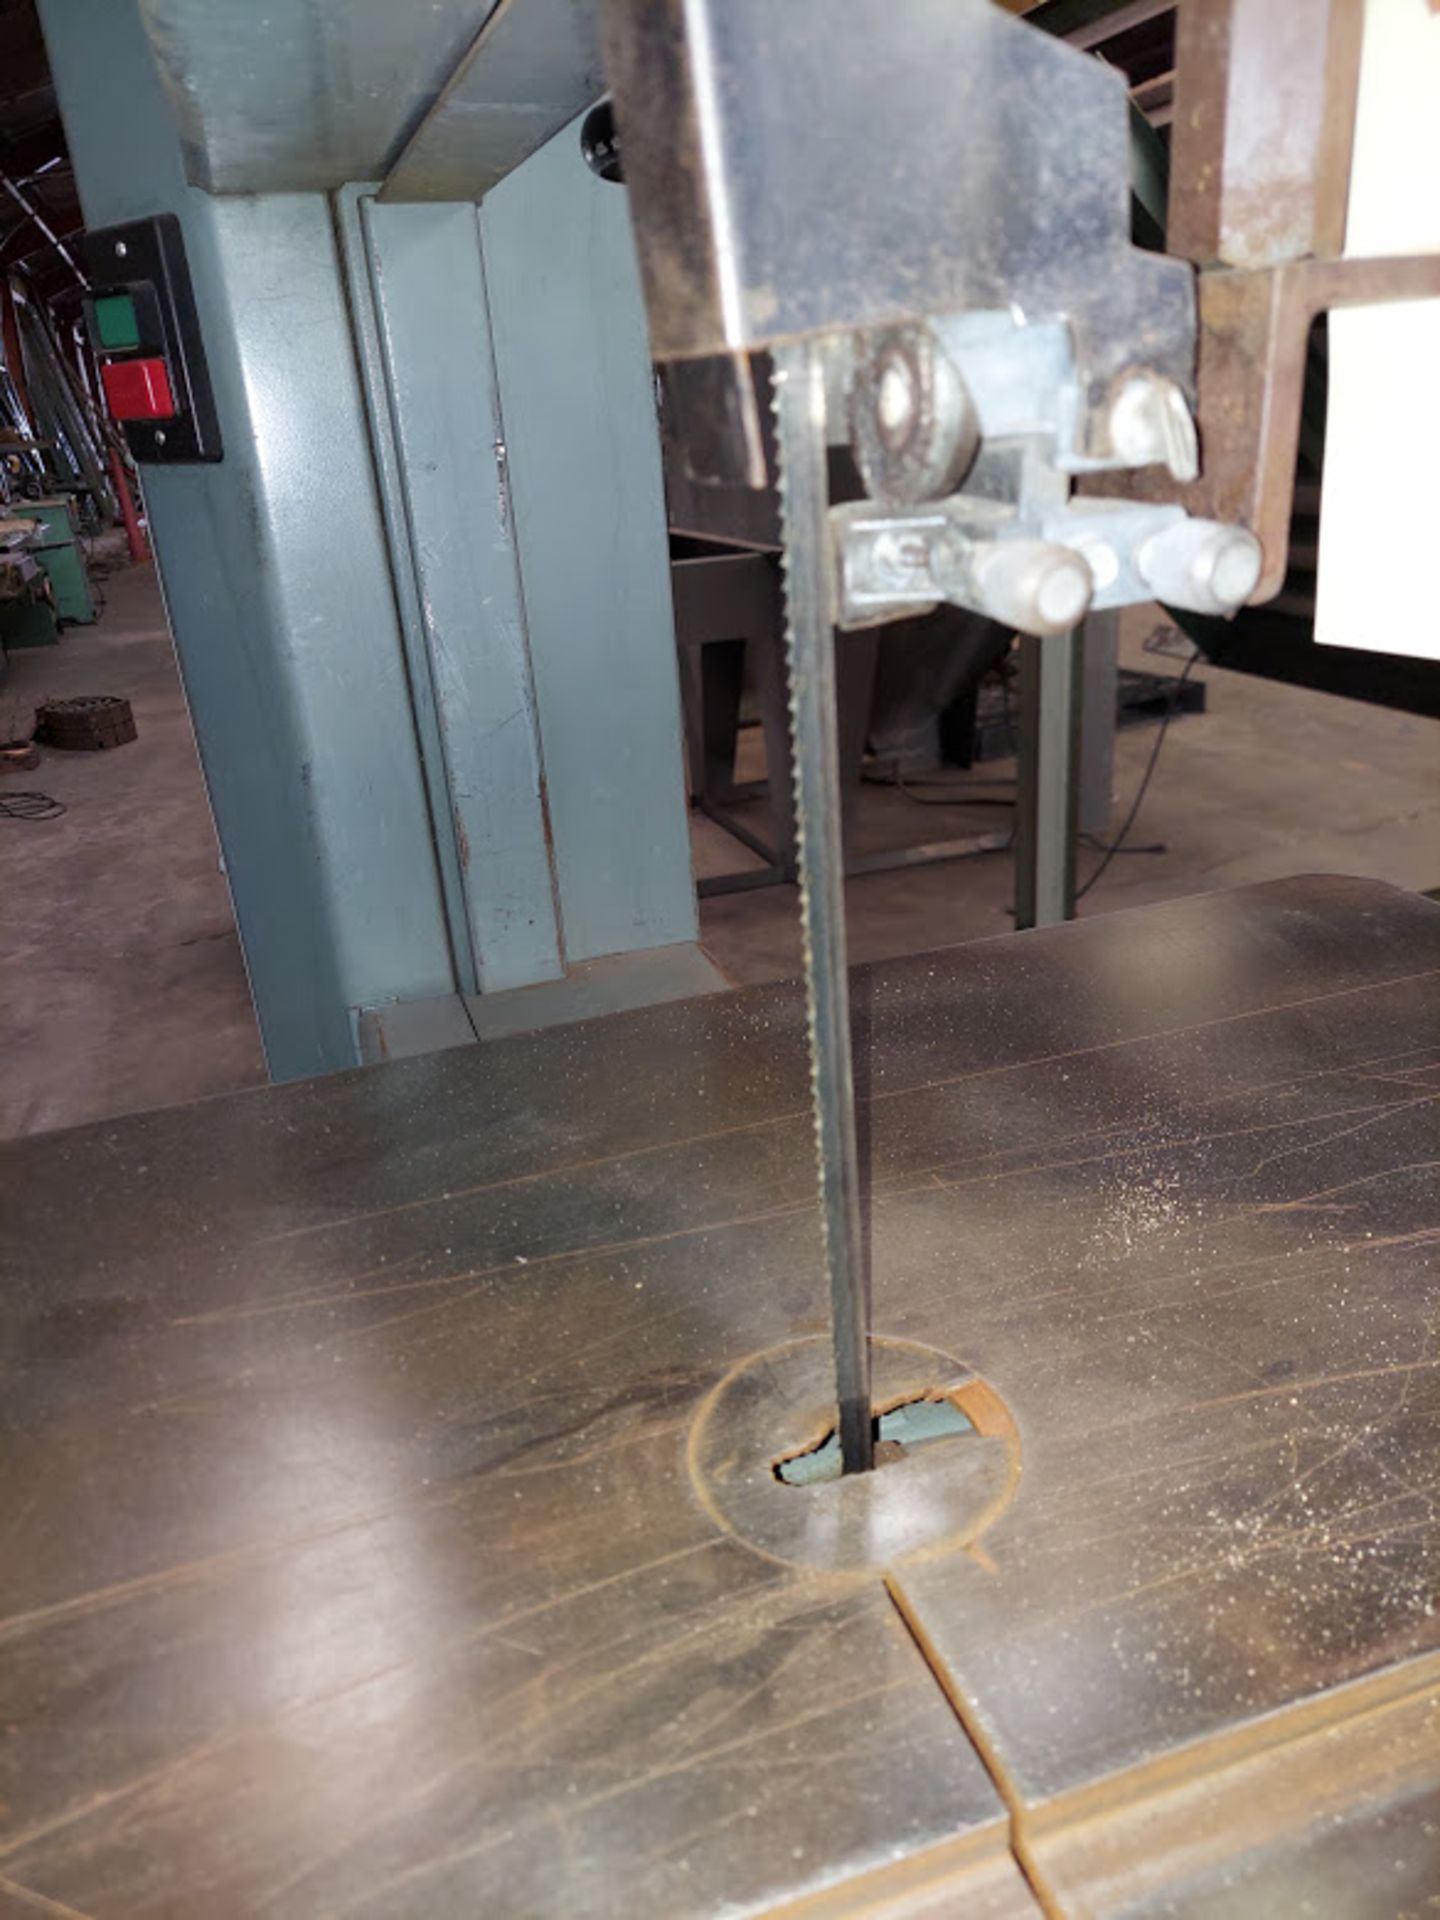 """Delta 20"""" Wood Cutting Bandsaw, Model #28-654, 2 HP 230 Volts 3 Phase, 2 Step Pully - Image 4 of 6"""